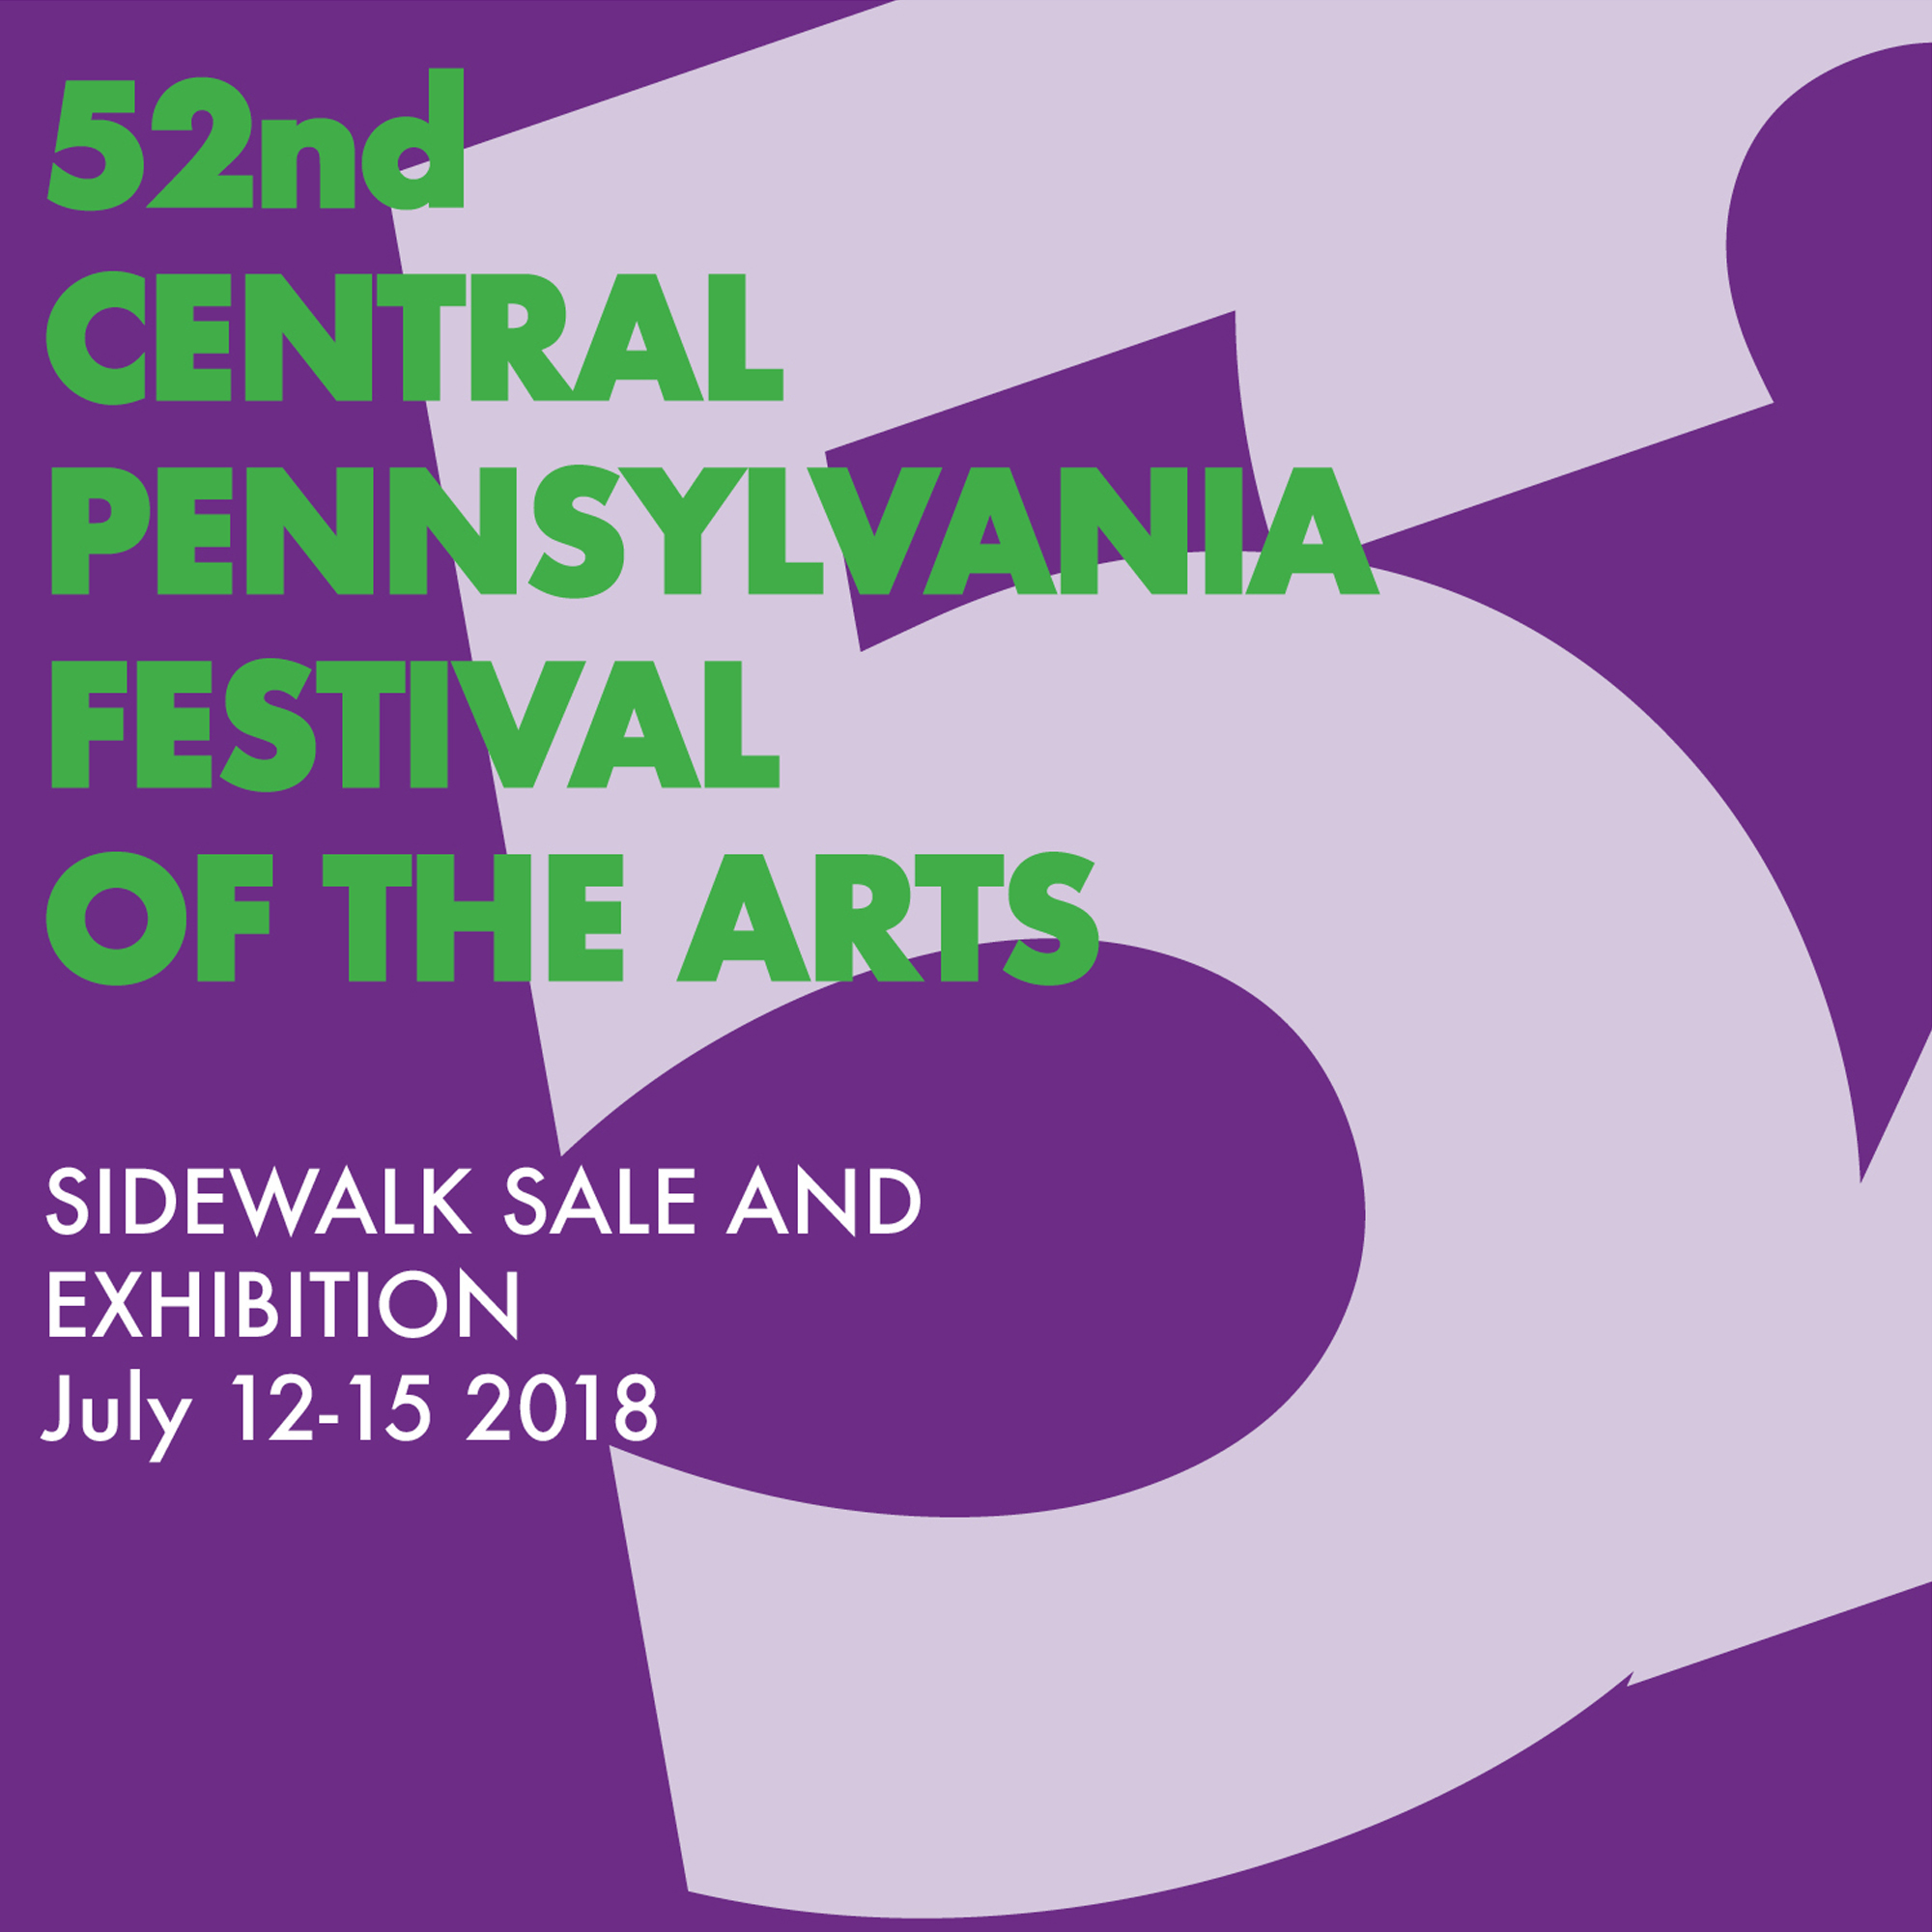 Sidewalk Sale and Exhibition